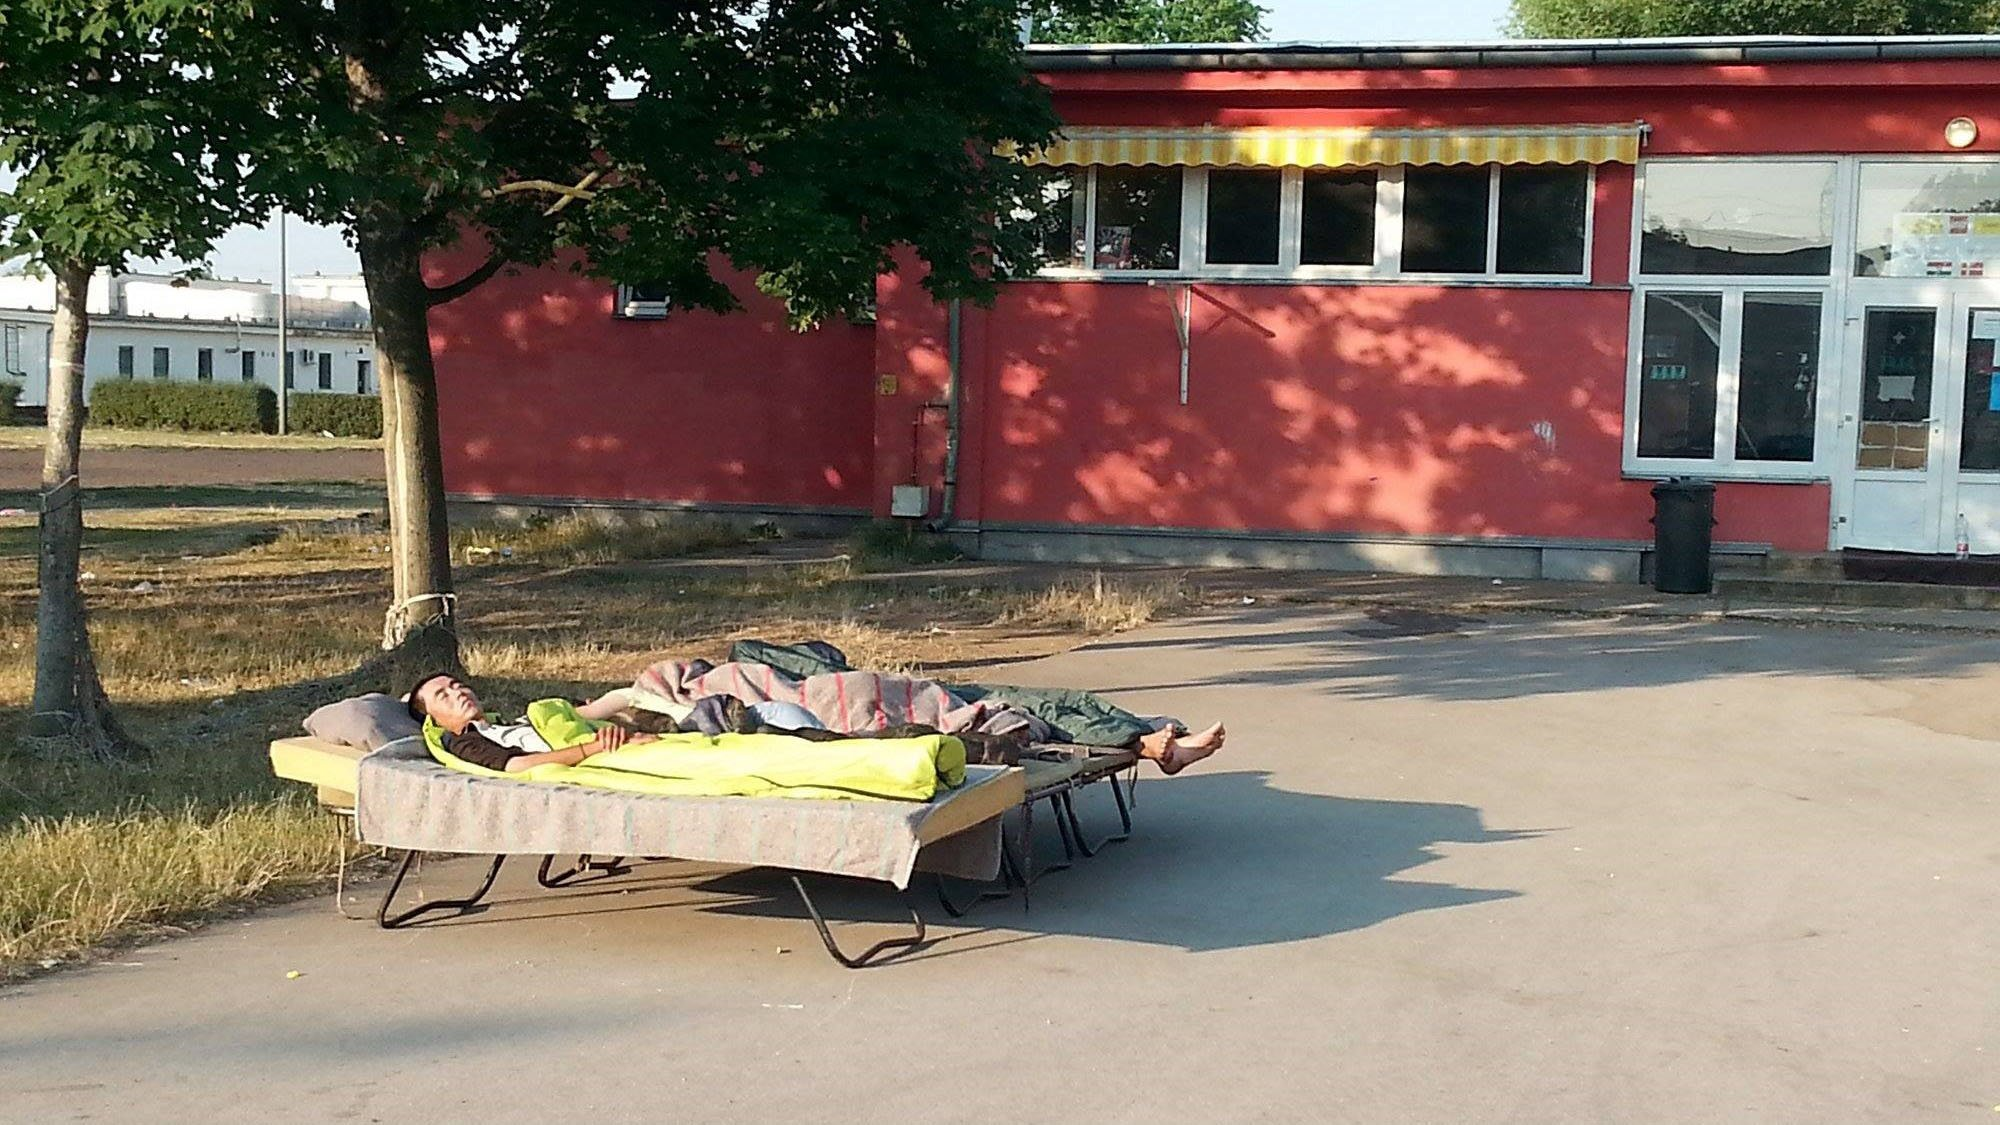 New arrivals at the Debrecen centre for asylum seekers in Hungary have to sleep outside because of overcrowding. The centre has an official capacity of 1,000 but currently has about 2,000 people staying there.